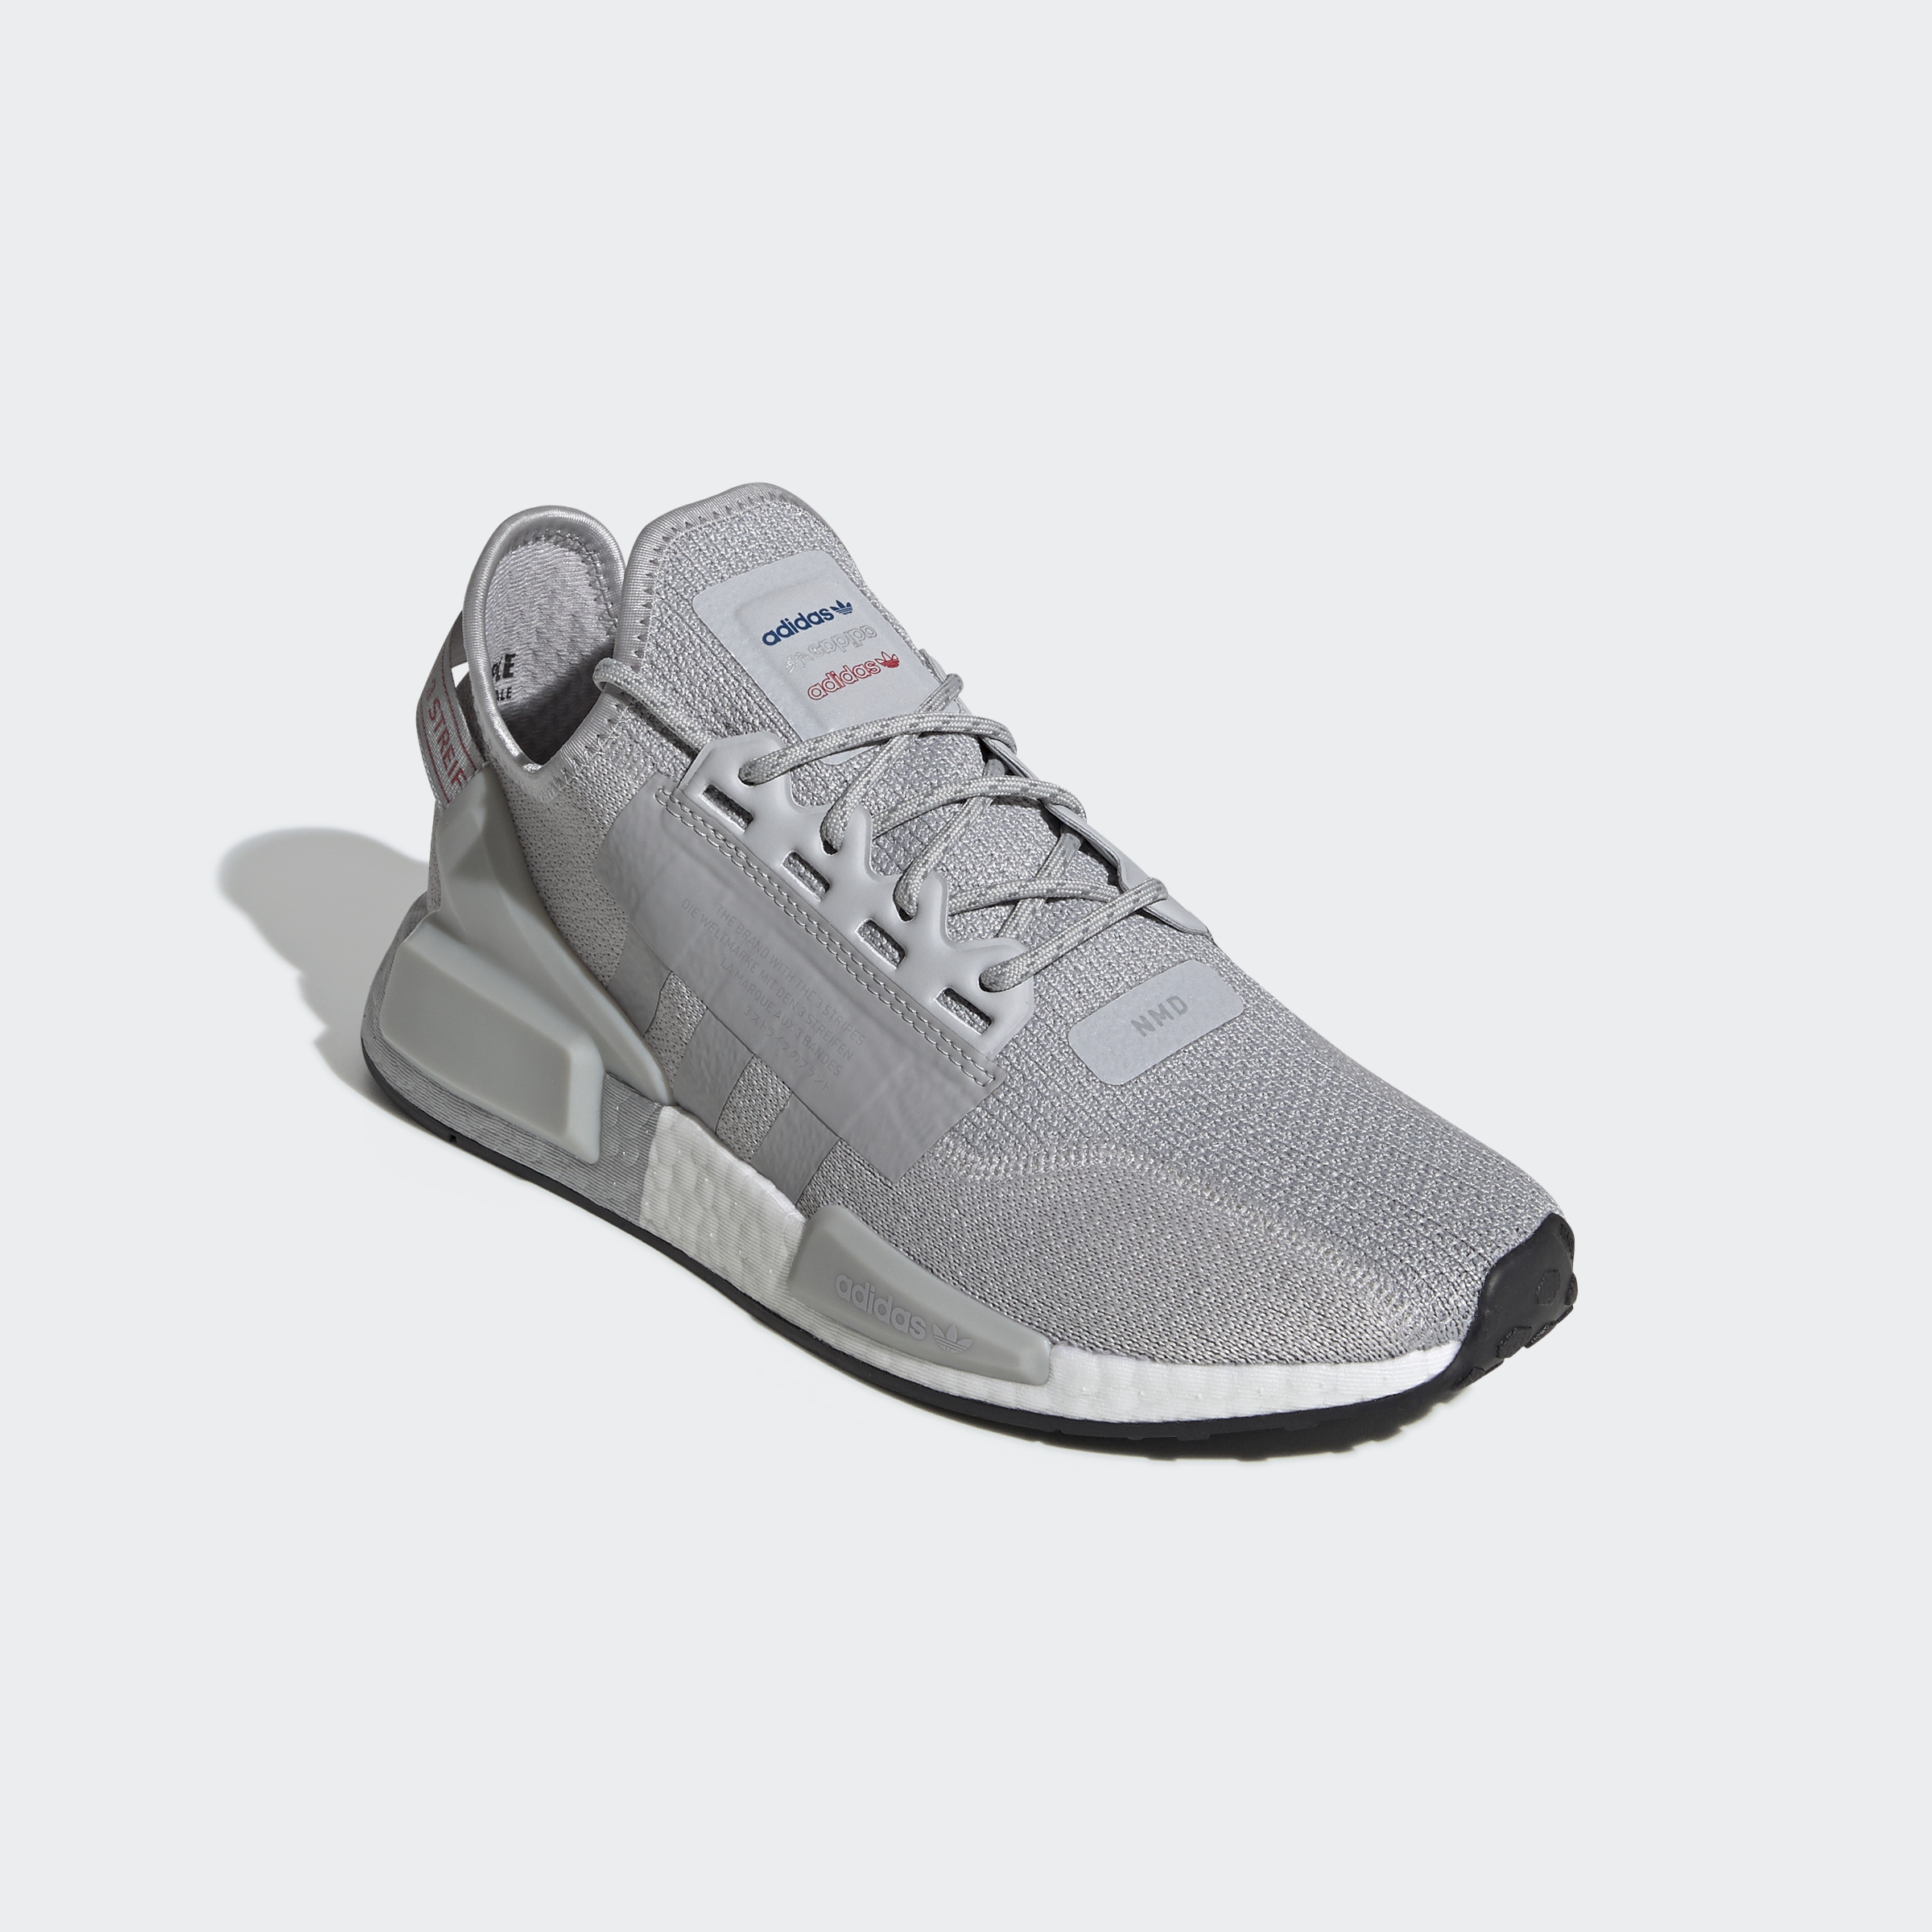 adidas-NMD-R1-V2-Shoes-Athletic-amp-Sneakers thumbnail 17